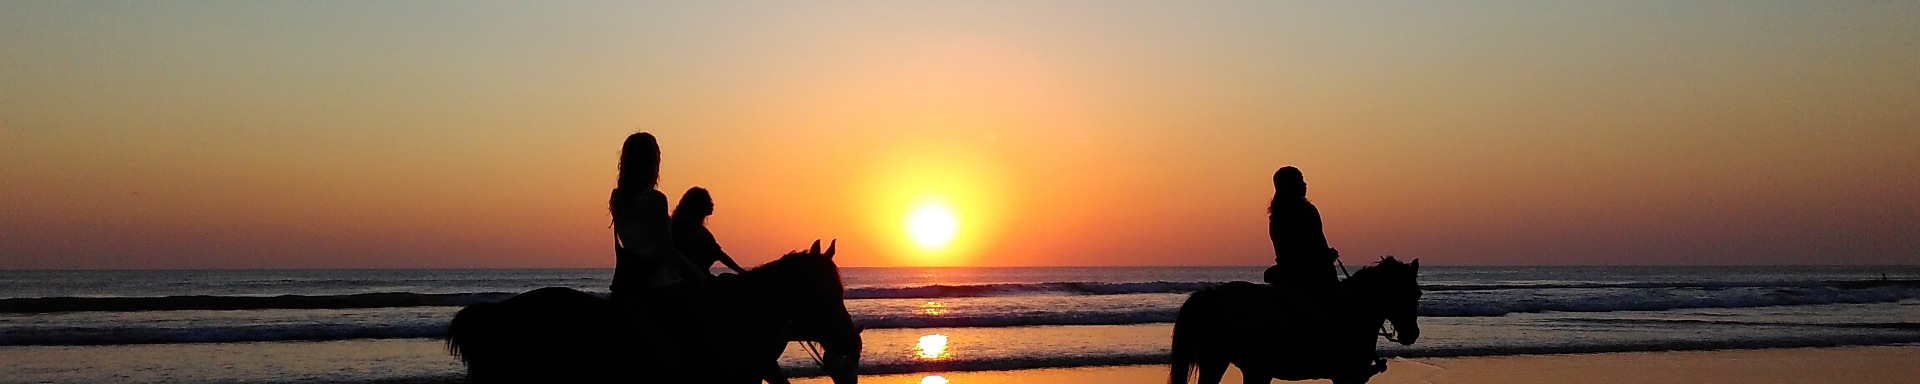 two people horse-riding along a beach at sun-set